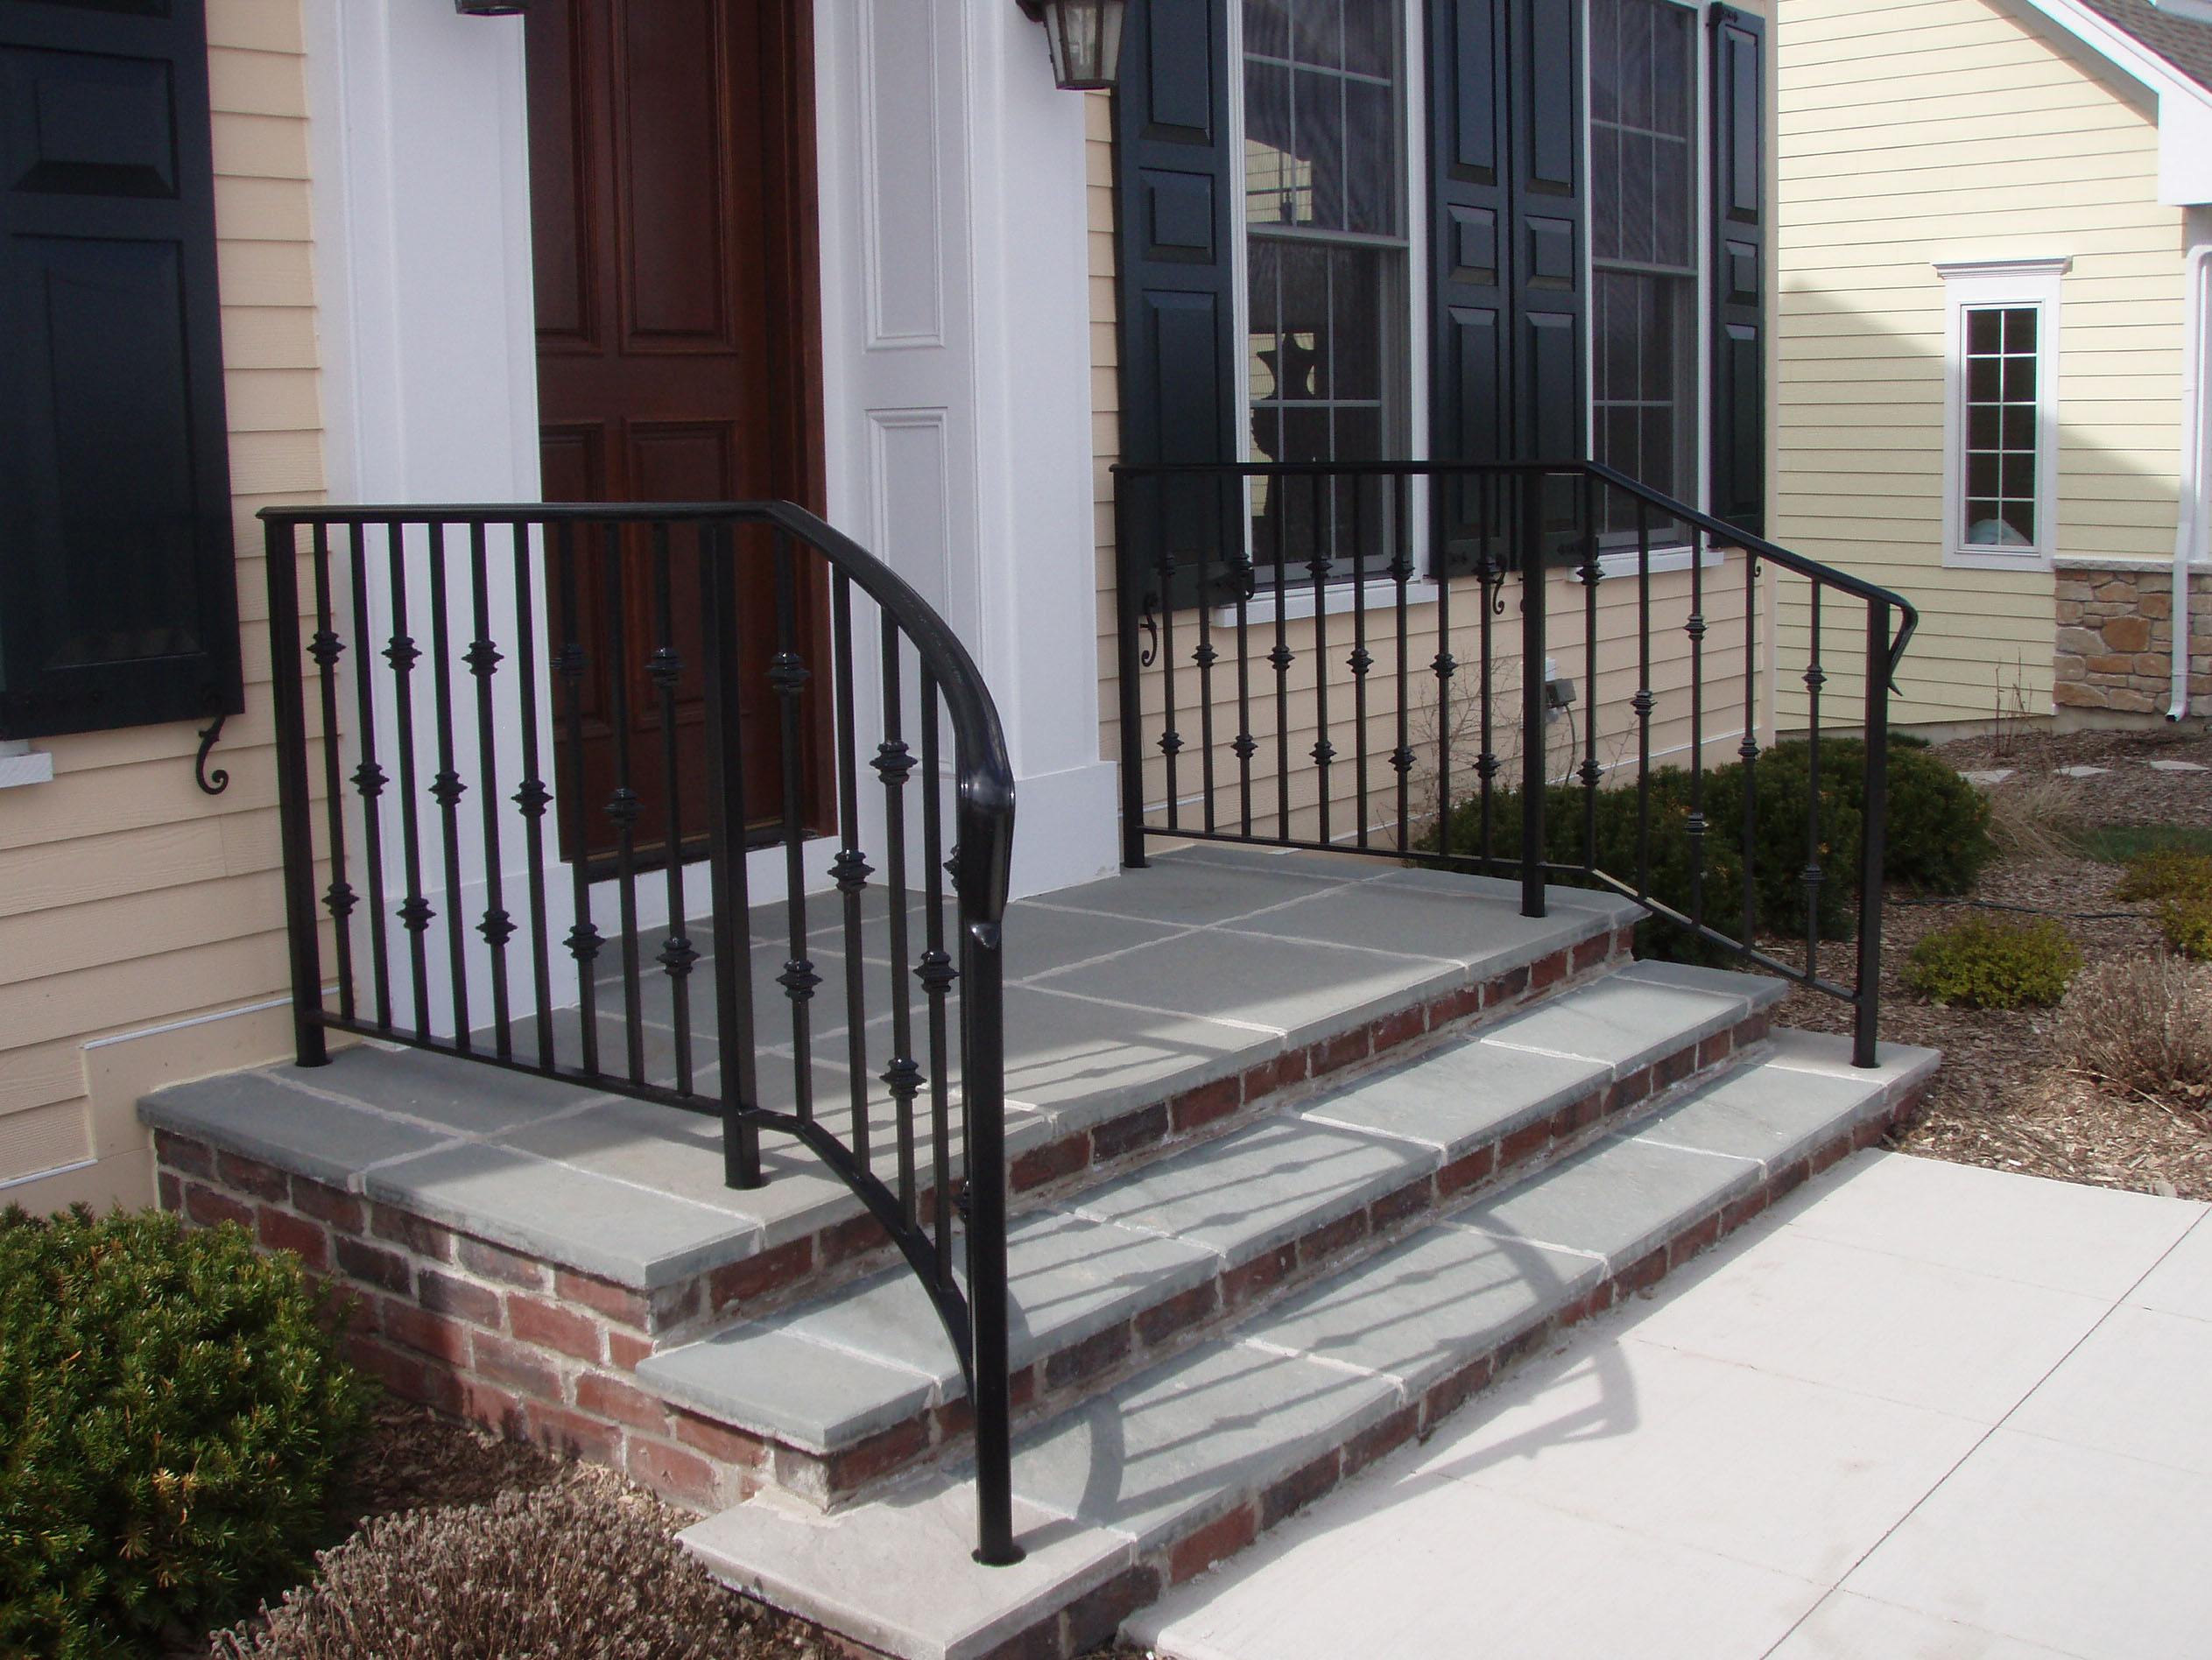 inspirational wrought iron handrails stairs railings curving away from